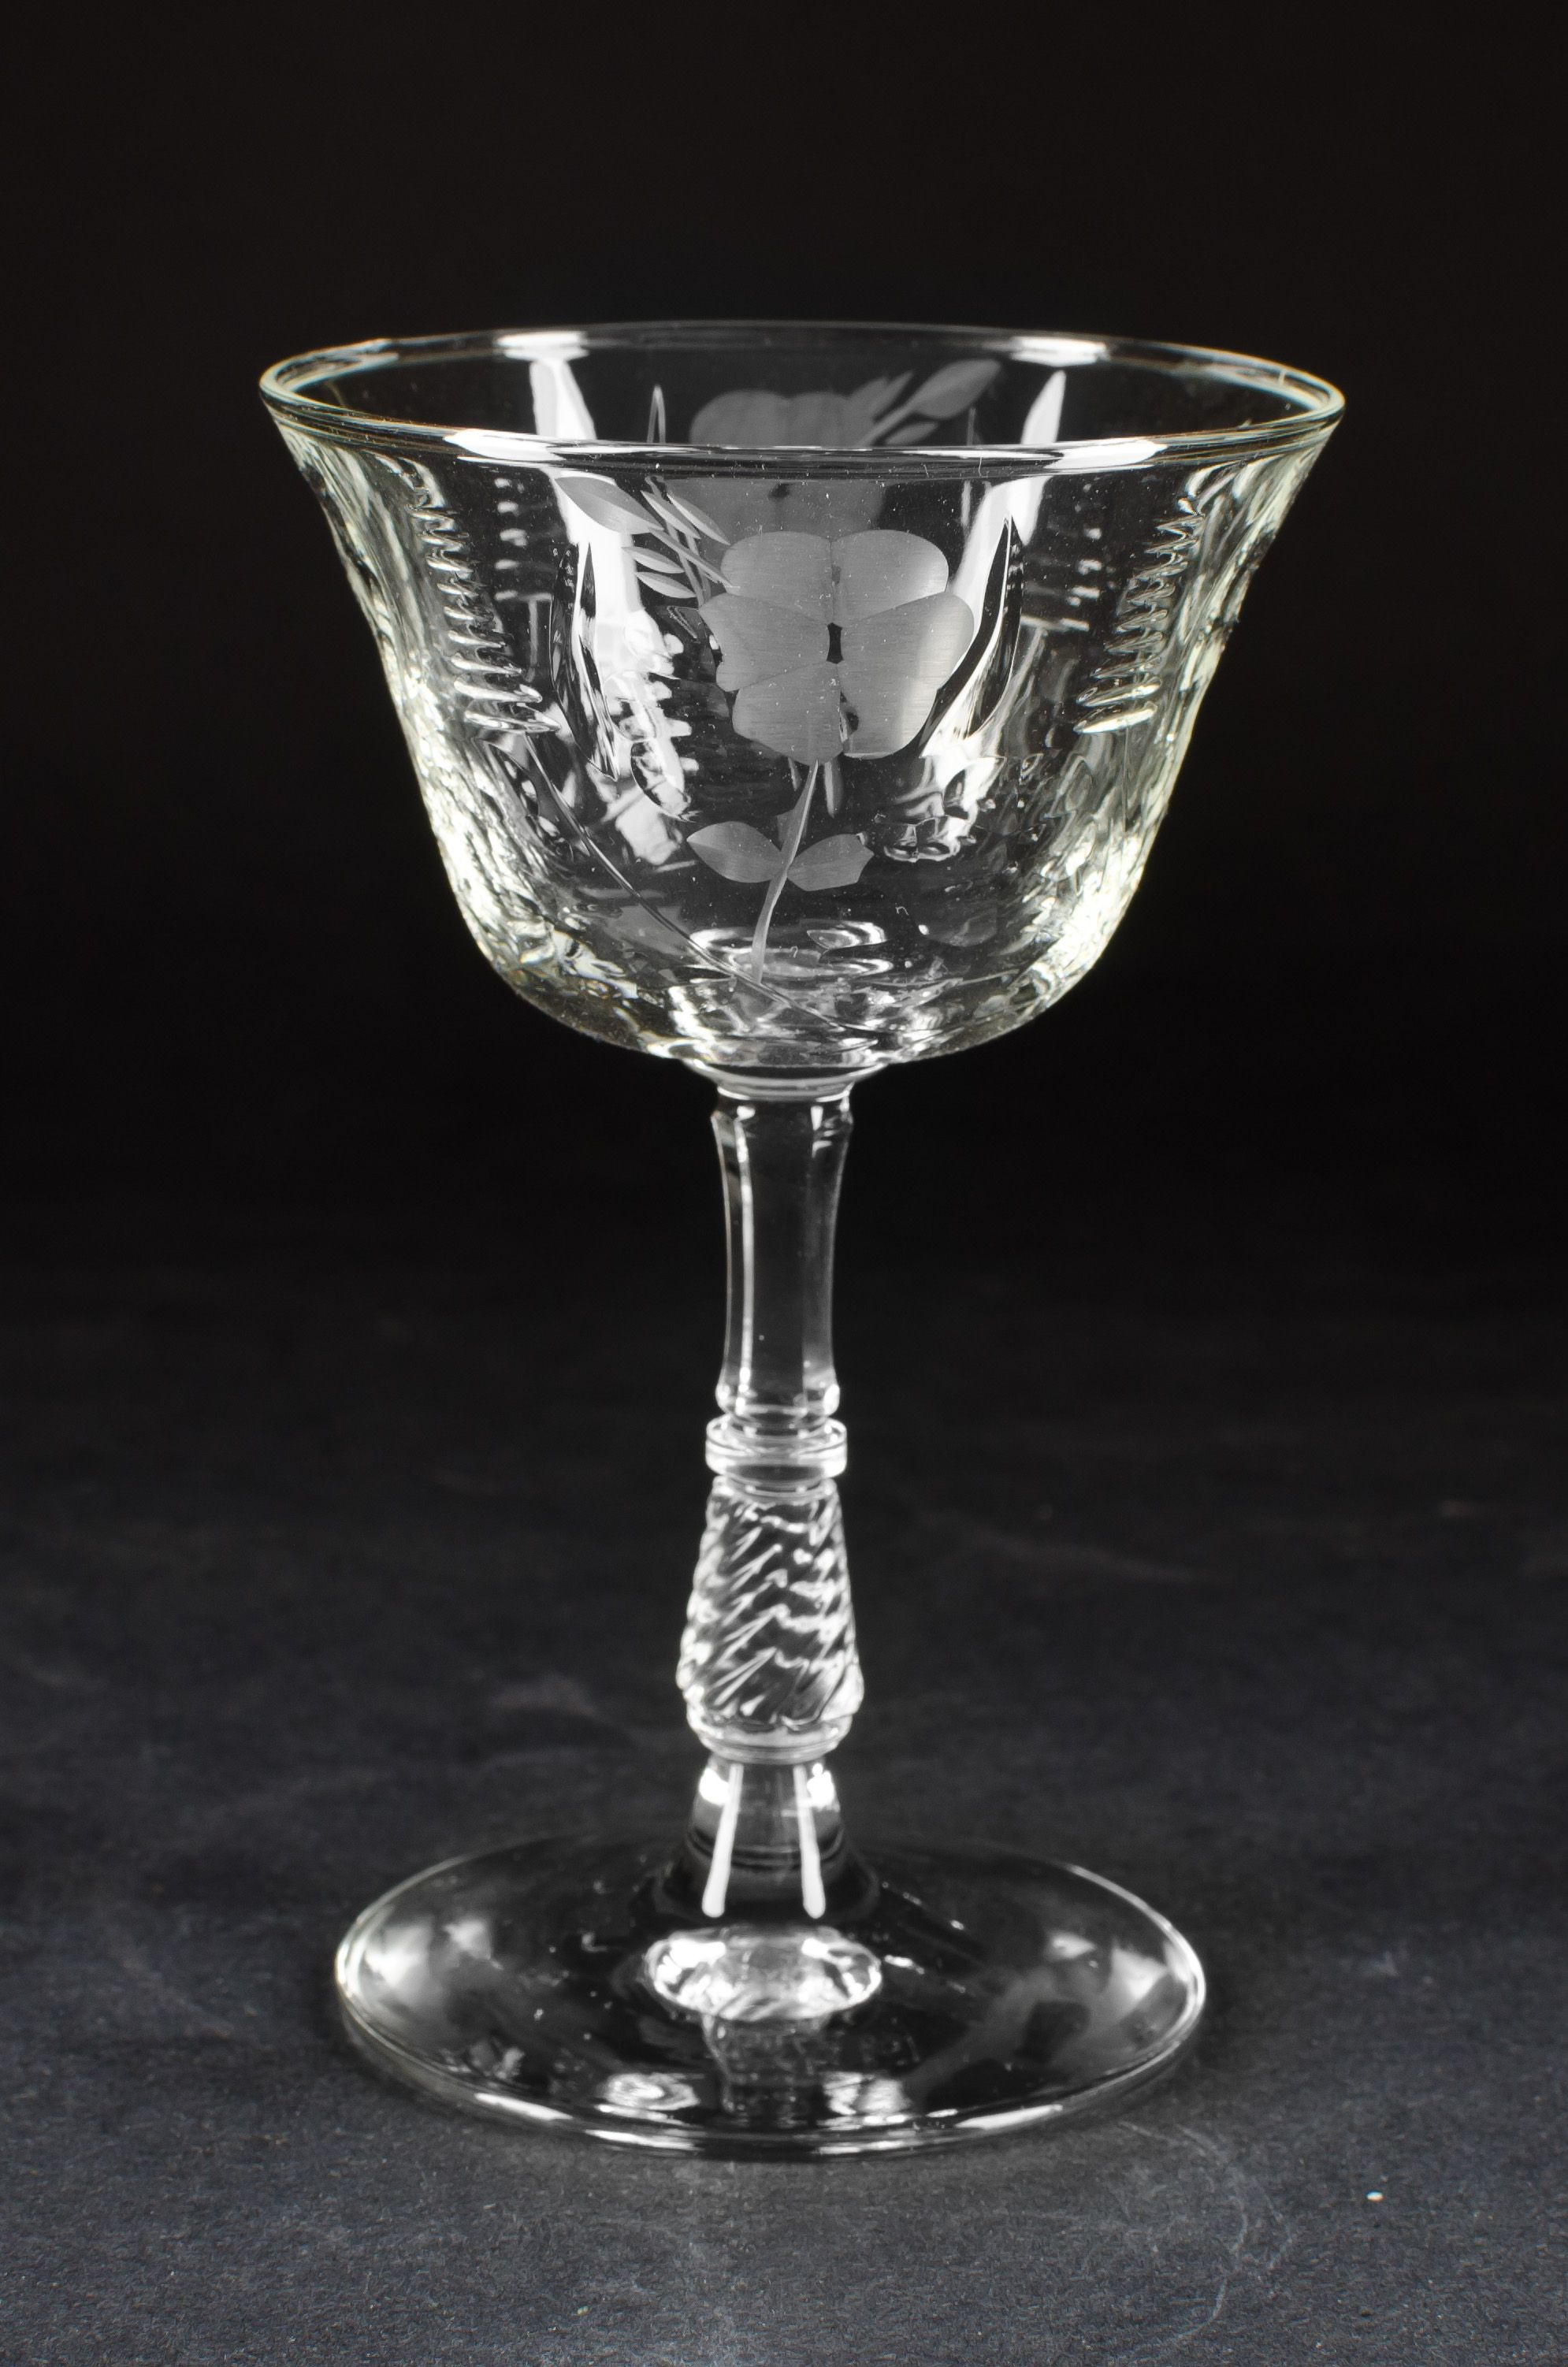 Small Stem Wine Glasses Etched Crystal Patterns Of 1930 39s 1940 39s Small Crystal